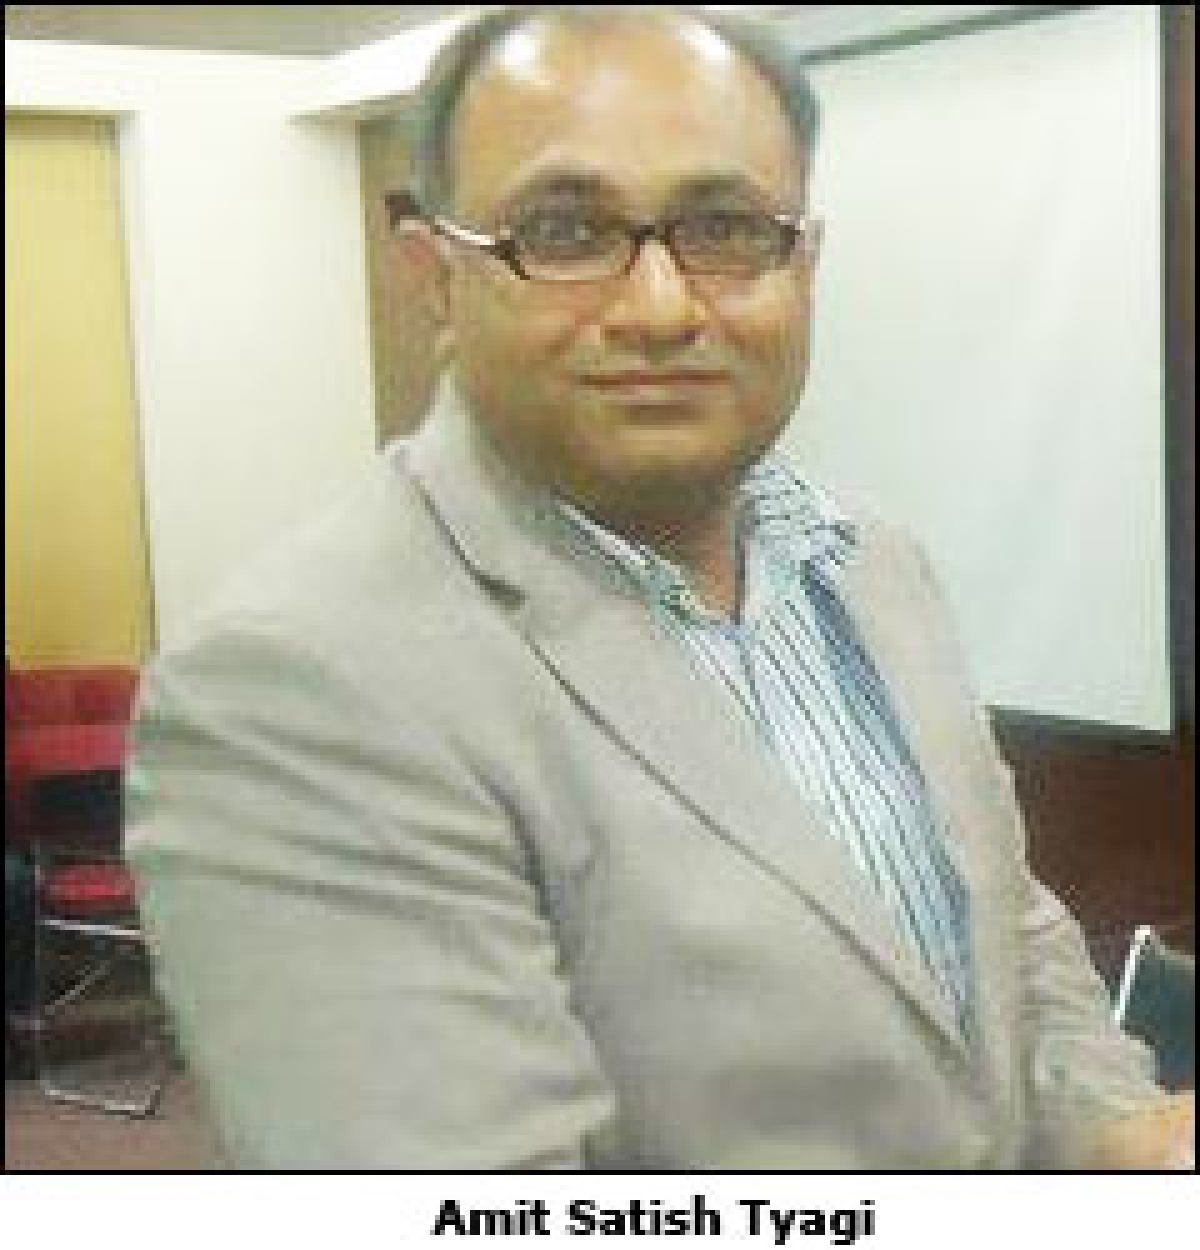 Quick Heal appoints Amit Satish Tyagi as head, marketing